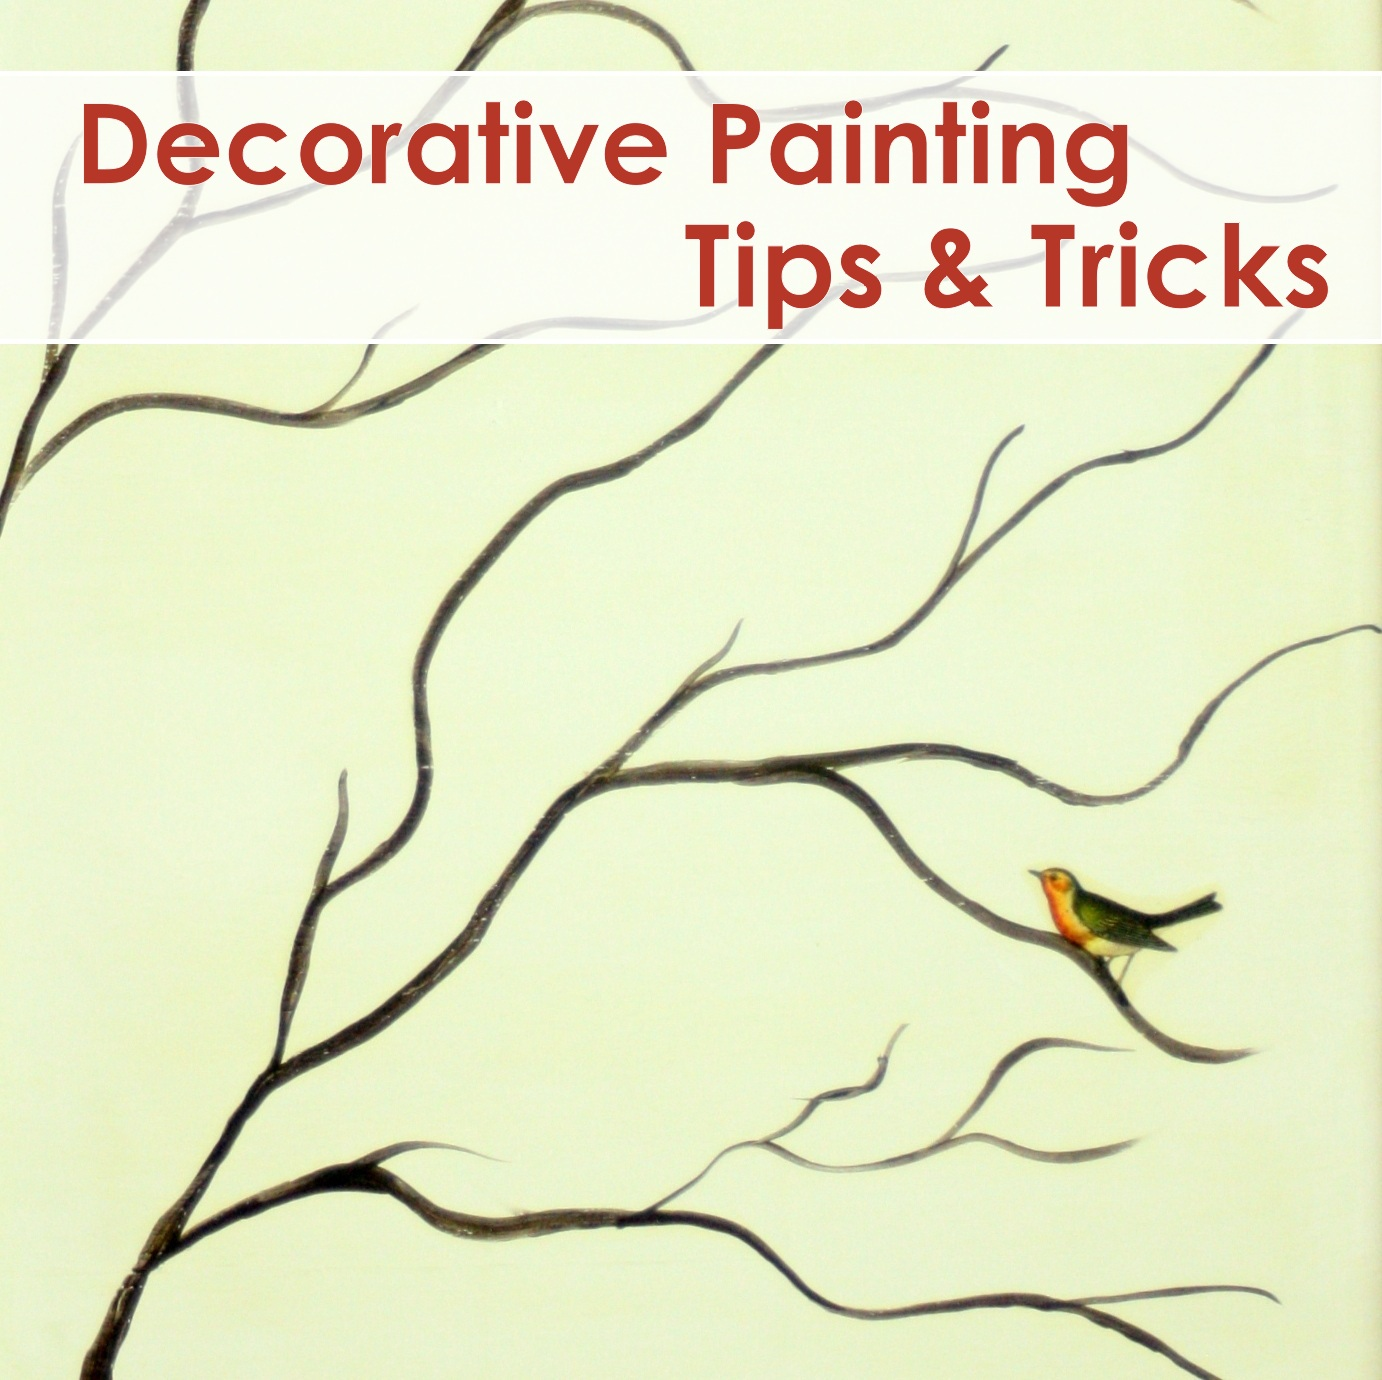 not so very long ago i was totally freaked out by the thoughts of decorative painting since my husband better known on my blog as mr scc is a genius at - Decorative Painting